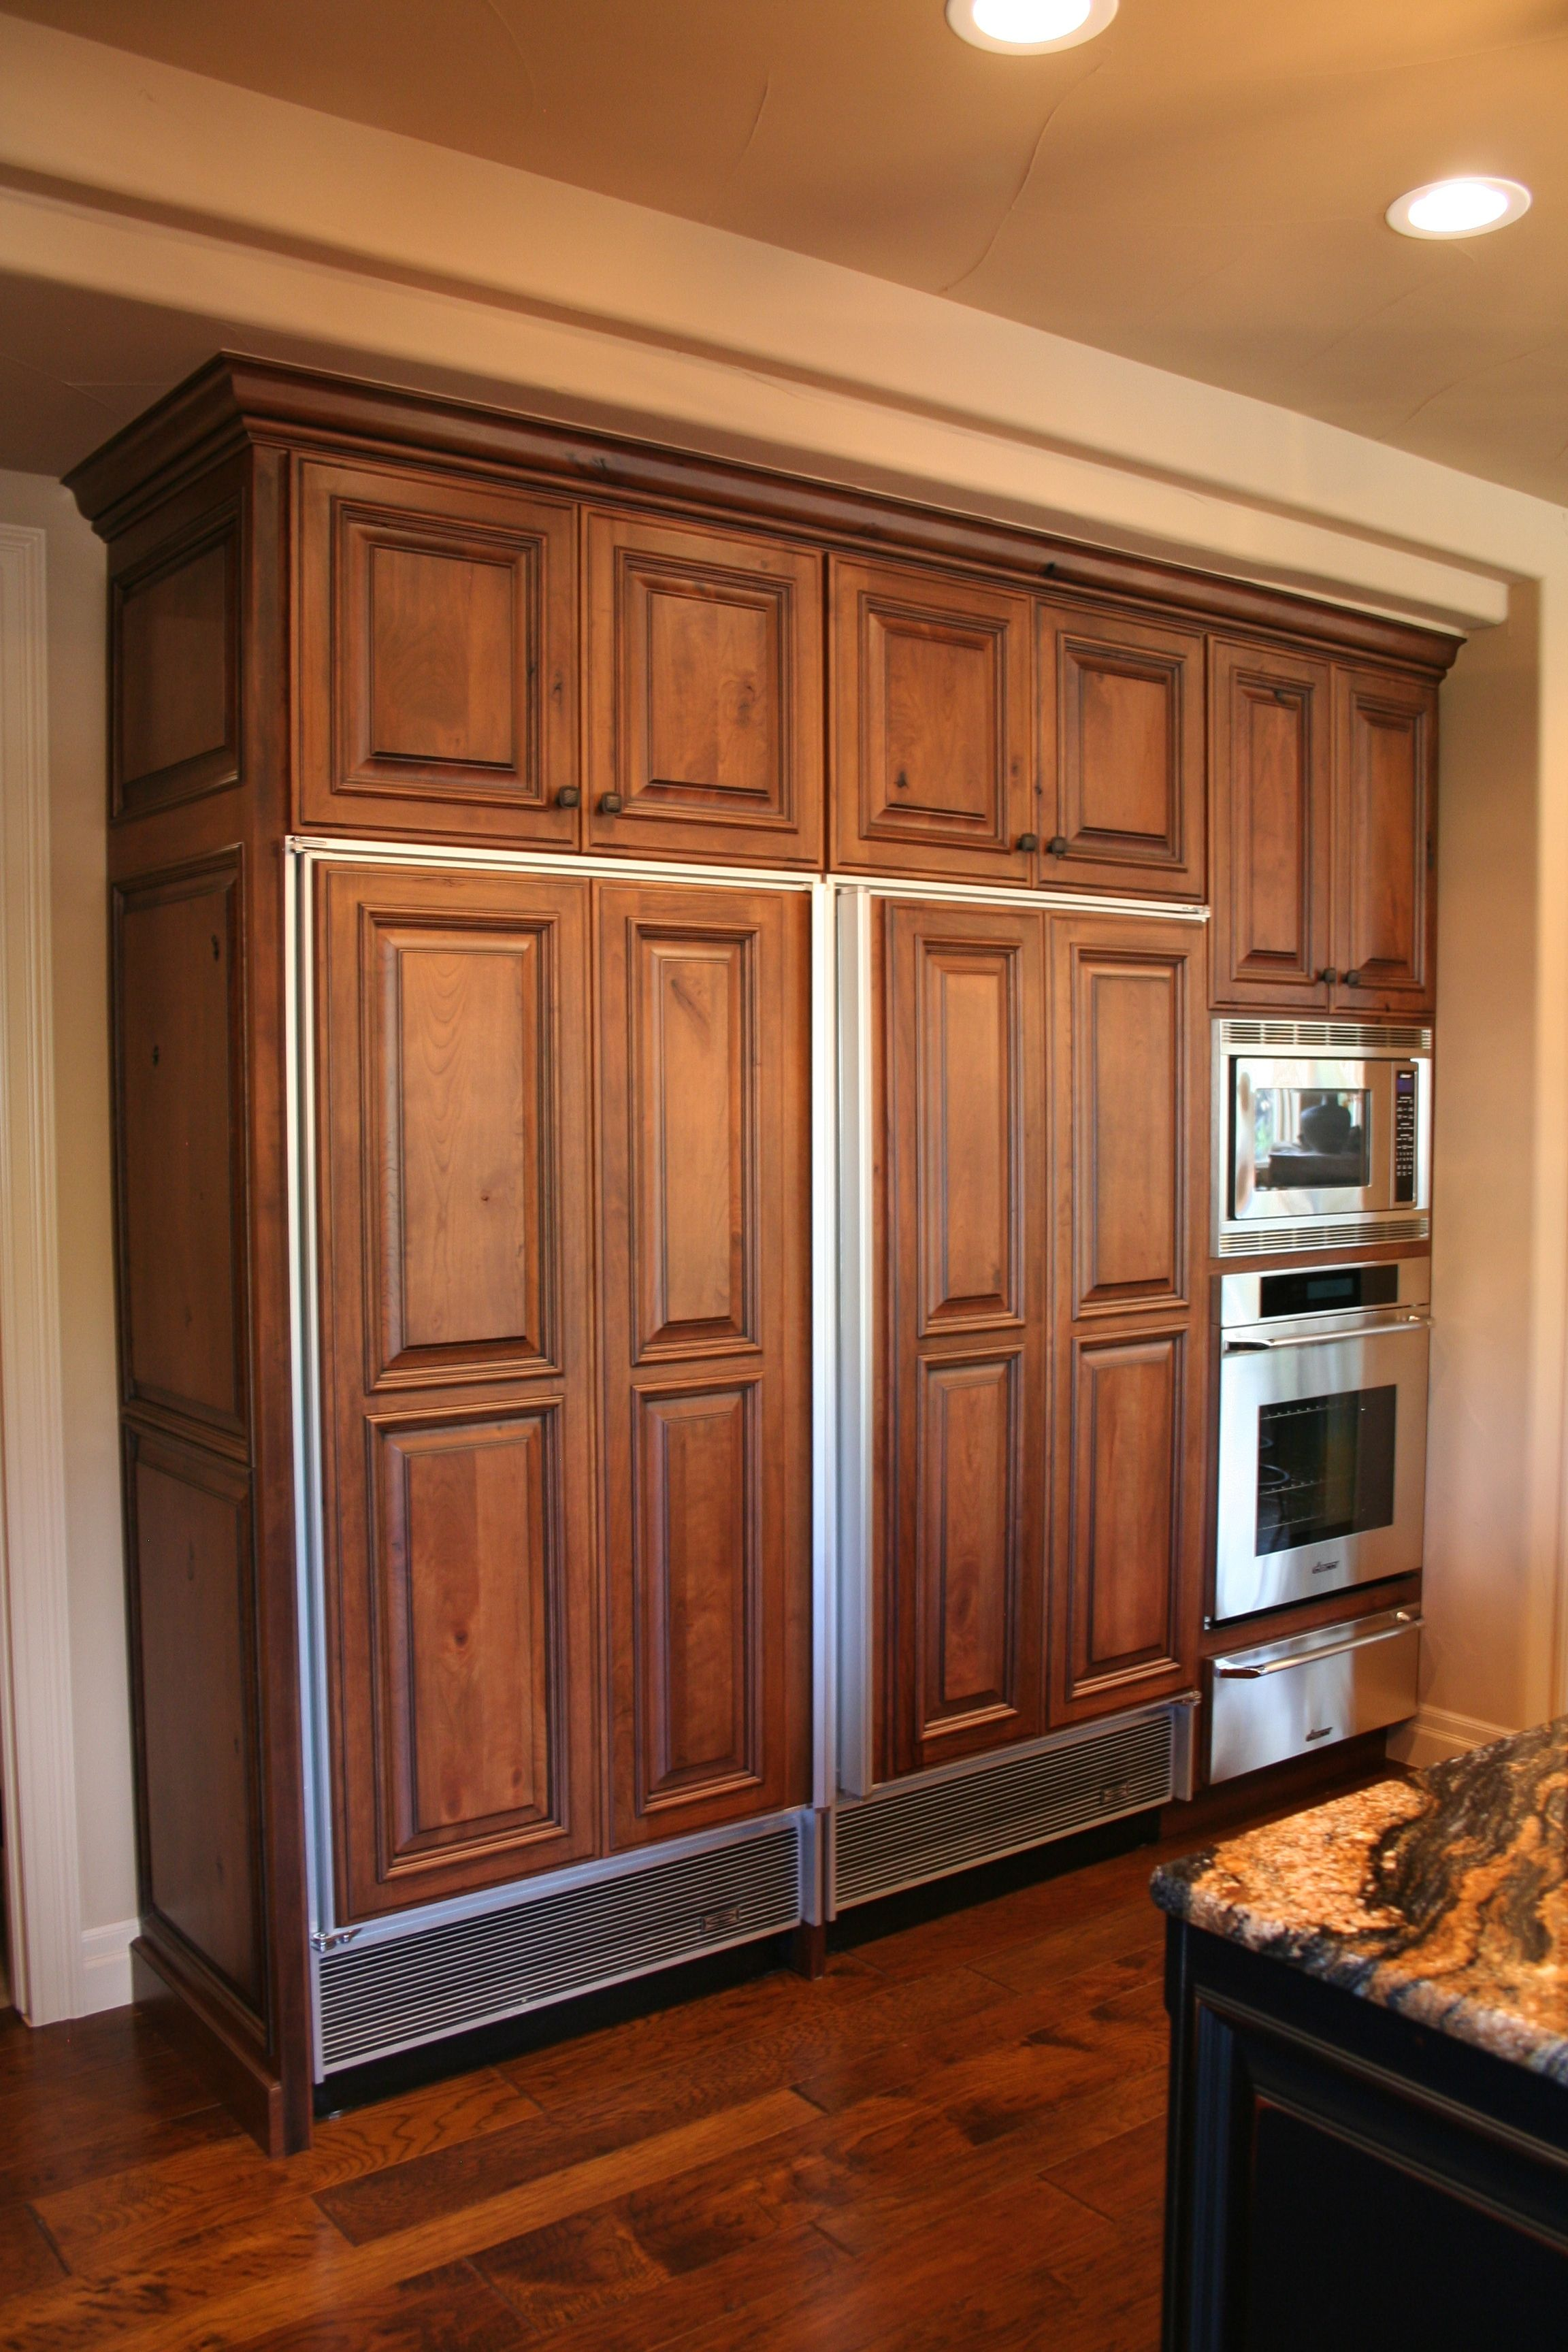 Bkc Kitchen And Bath Crystal Cabinet Works Custom Door Style Wheaton Finish With A Black Glaze On Ru Cabinets And Countertops Cabinetry Cabinet Door Styles